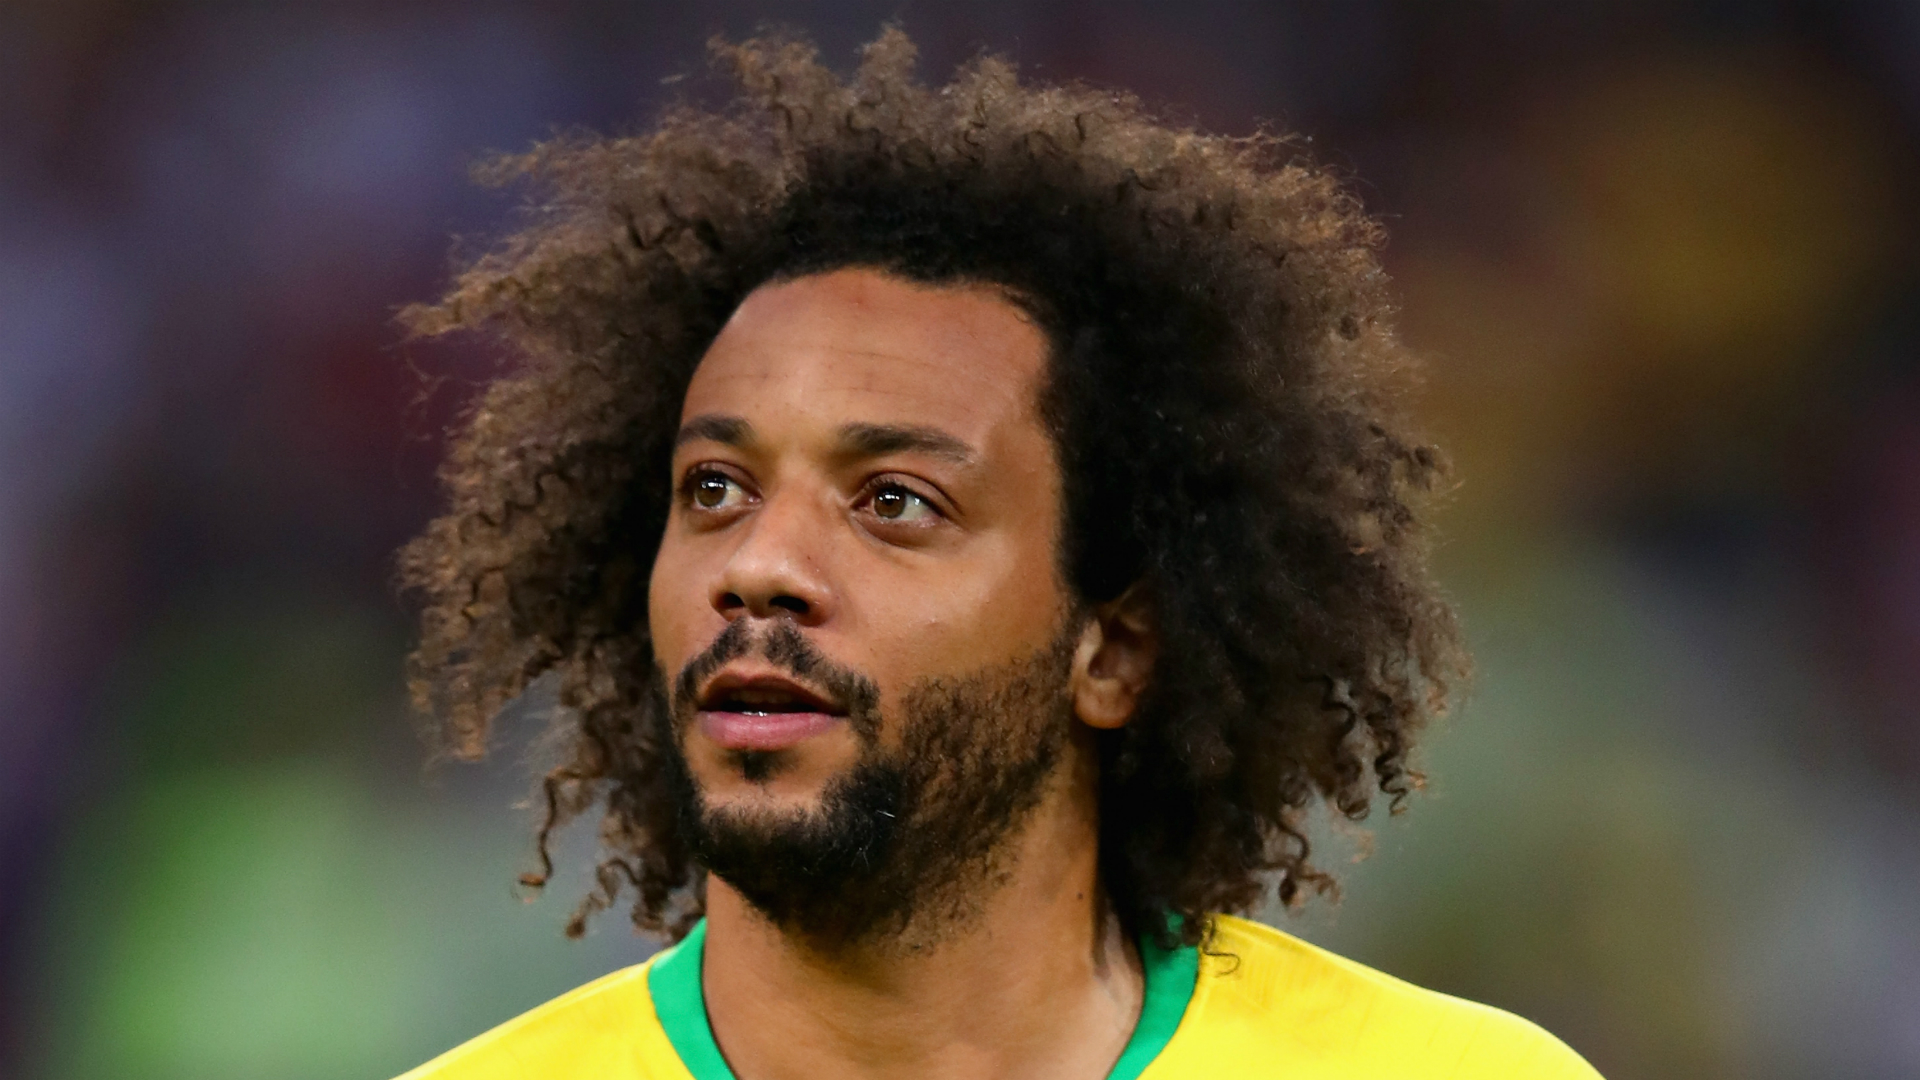 Hotel mattress blamed for Marcelo's back injury at World Cup